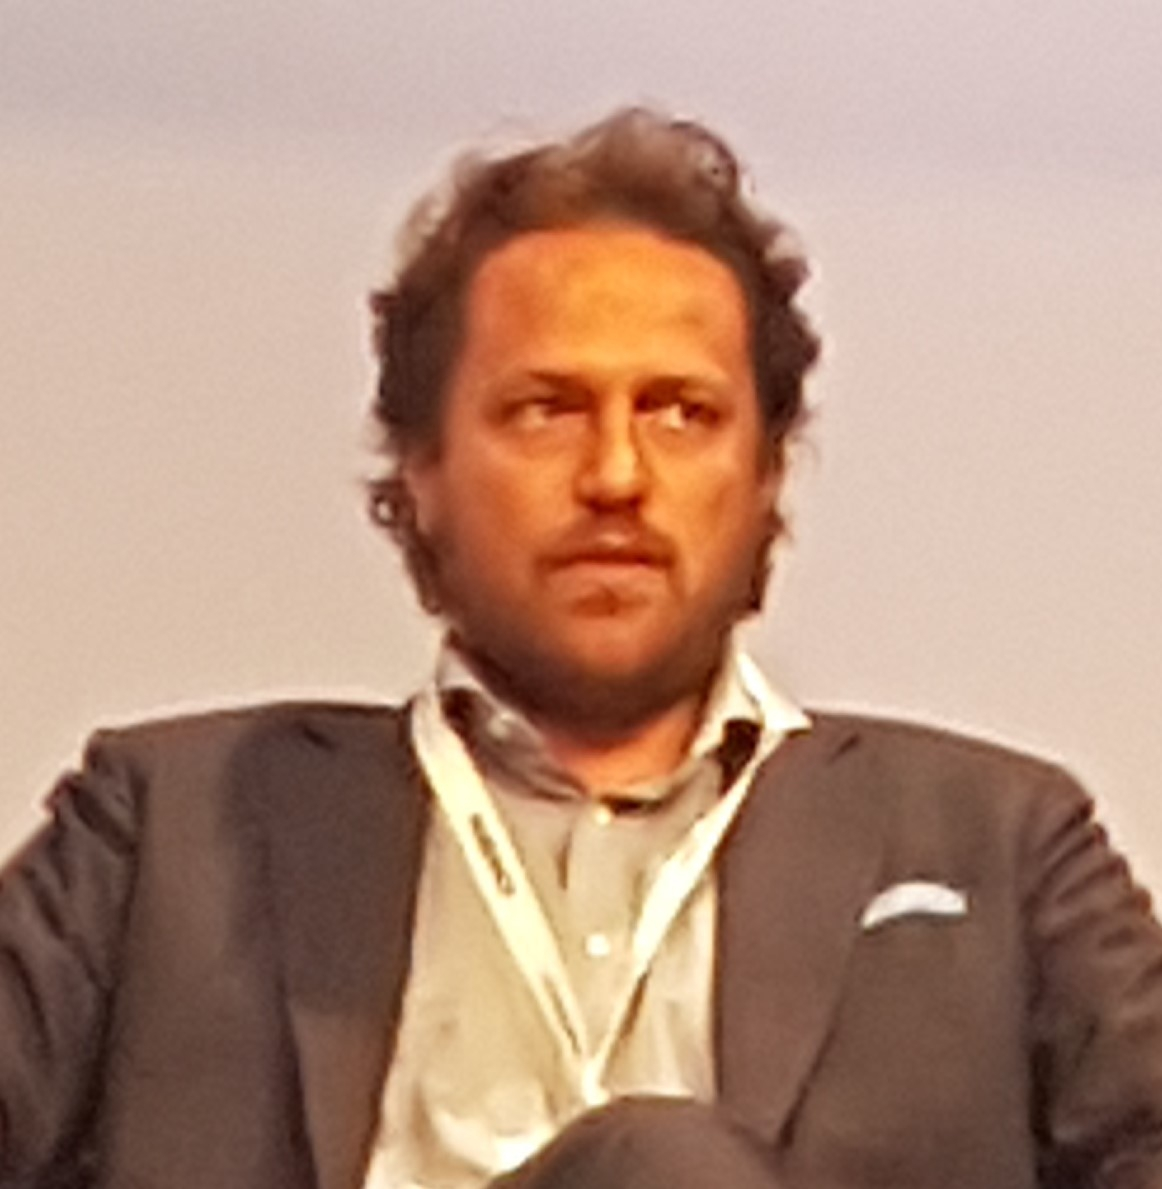 Mattia Mor, Head of Europe di Mei